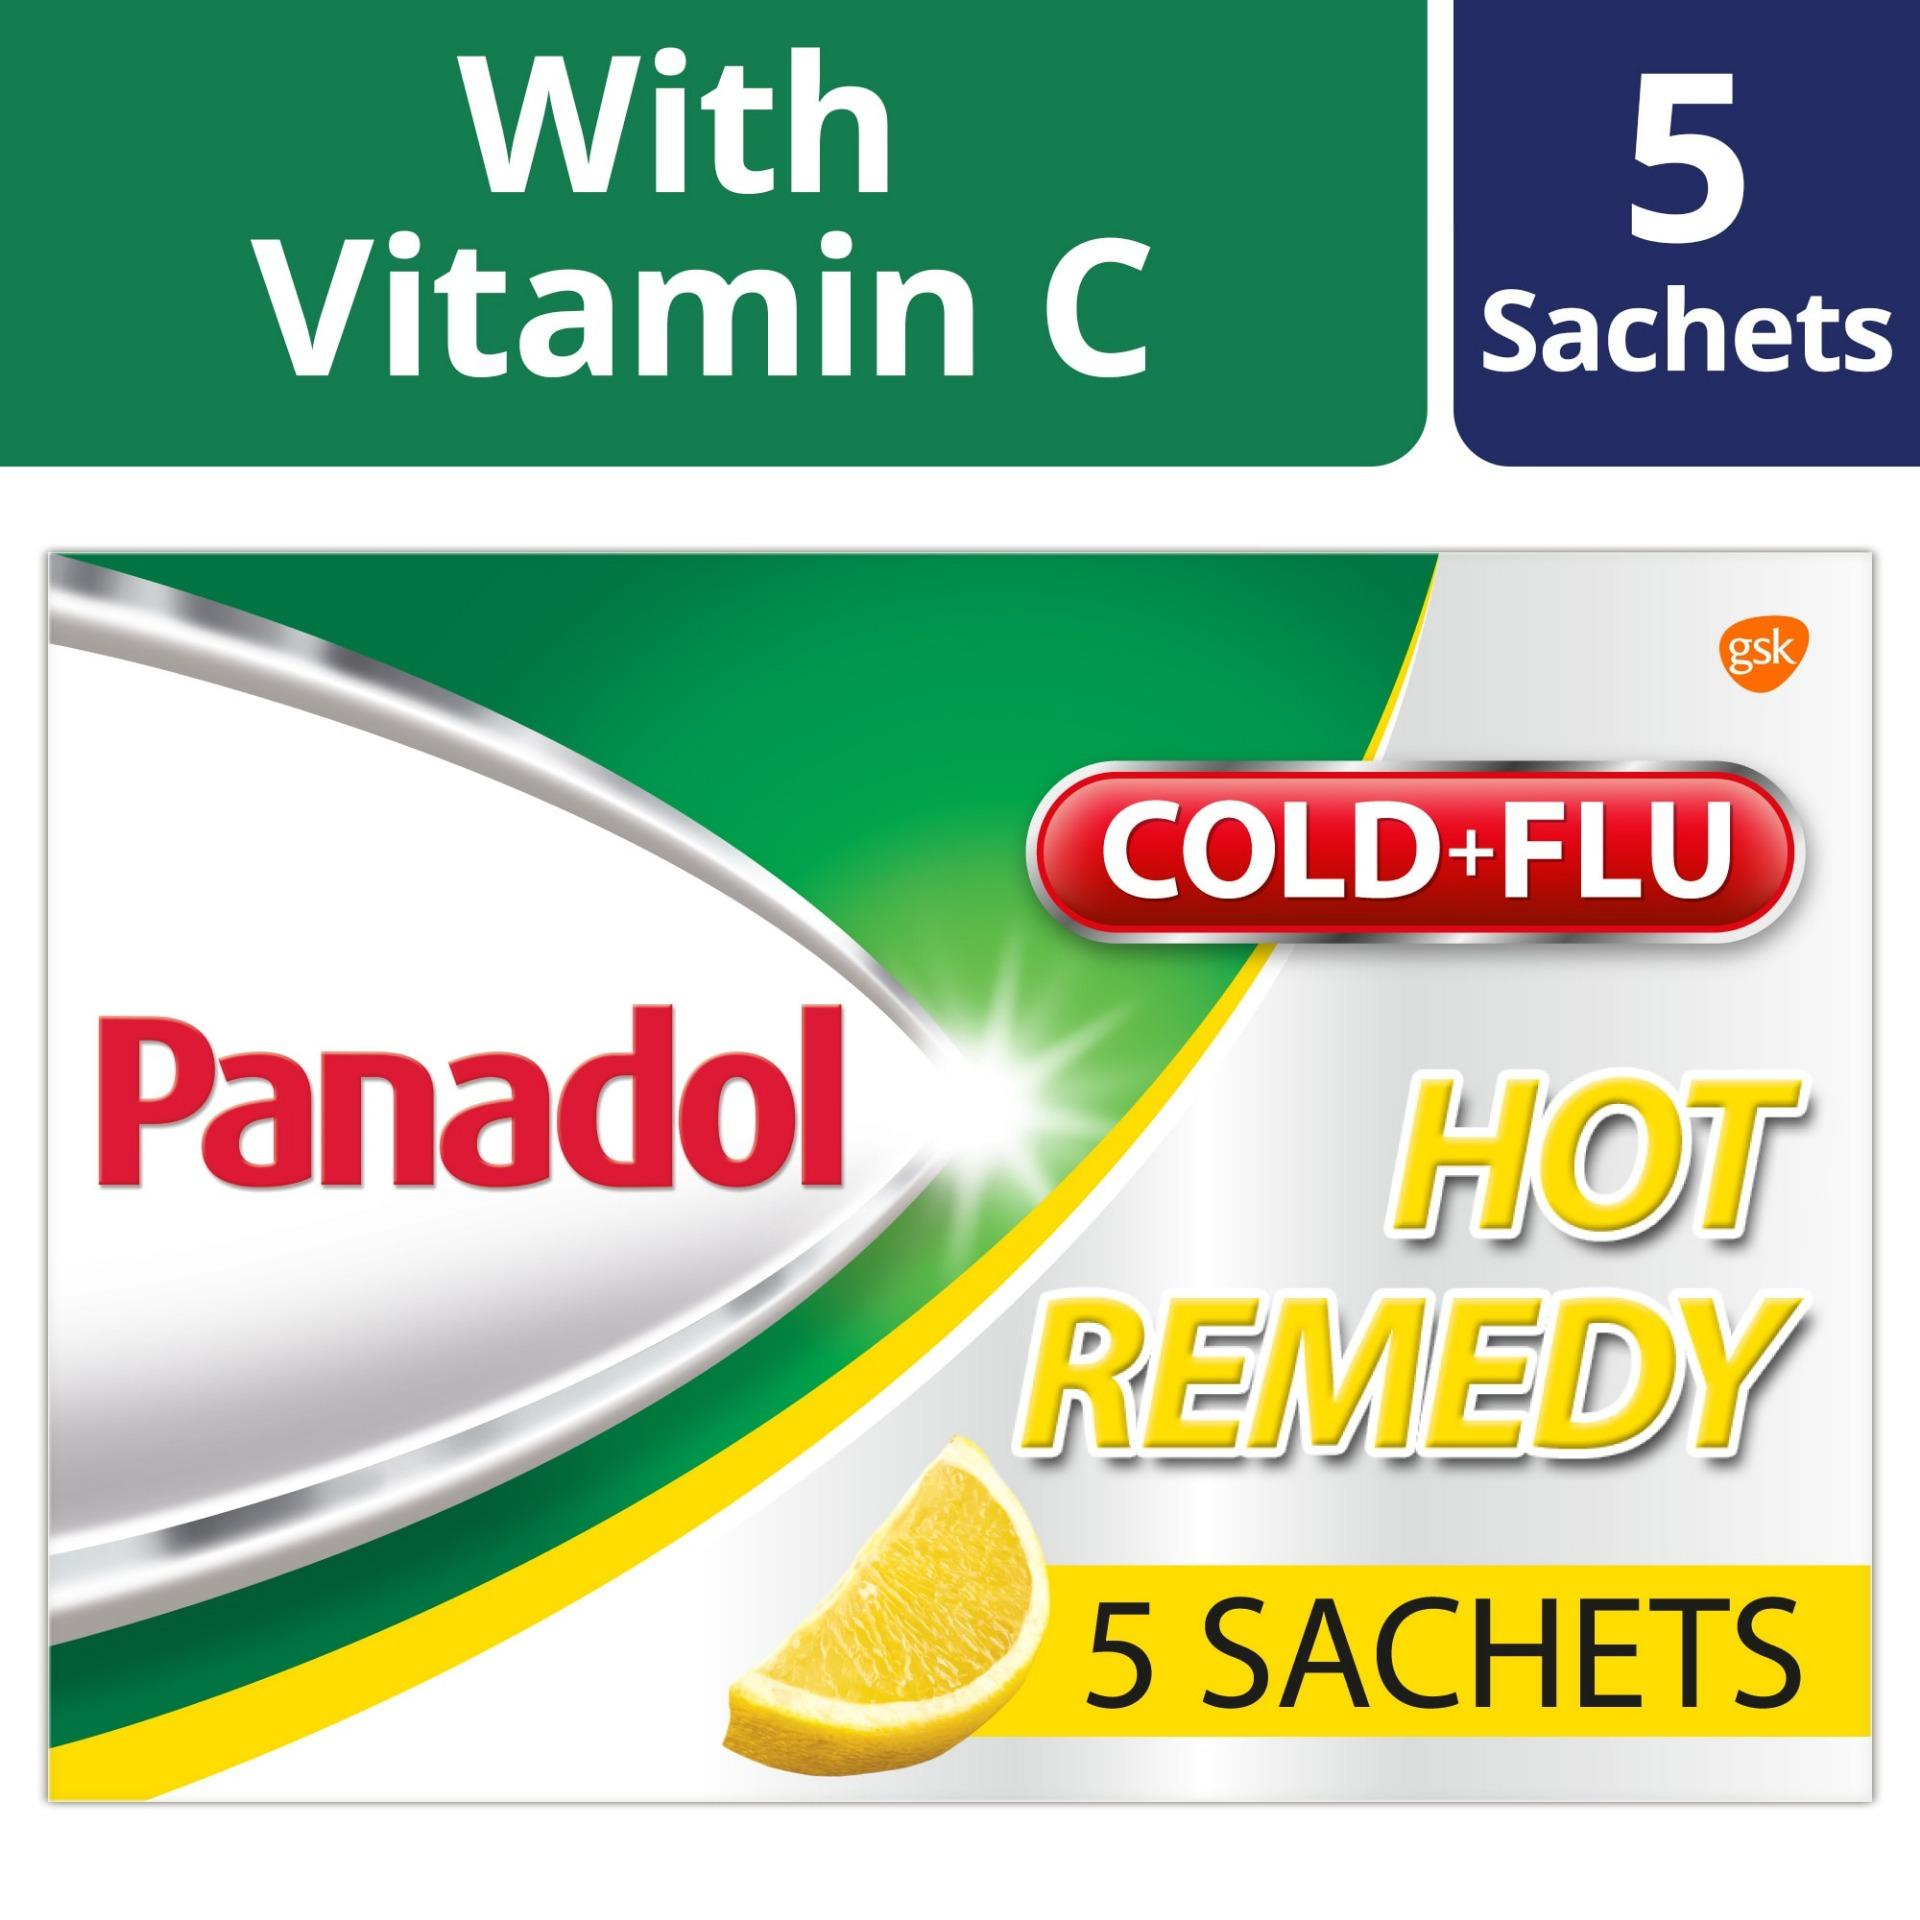 Buy Panadol Immunity Online Well Being Actifast Hot Remedy Cold And Flu For Blocked Nose Fever